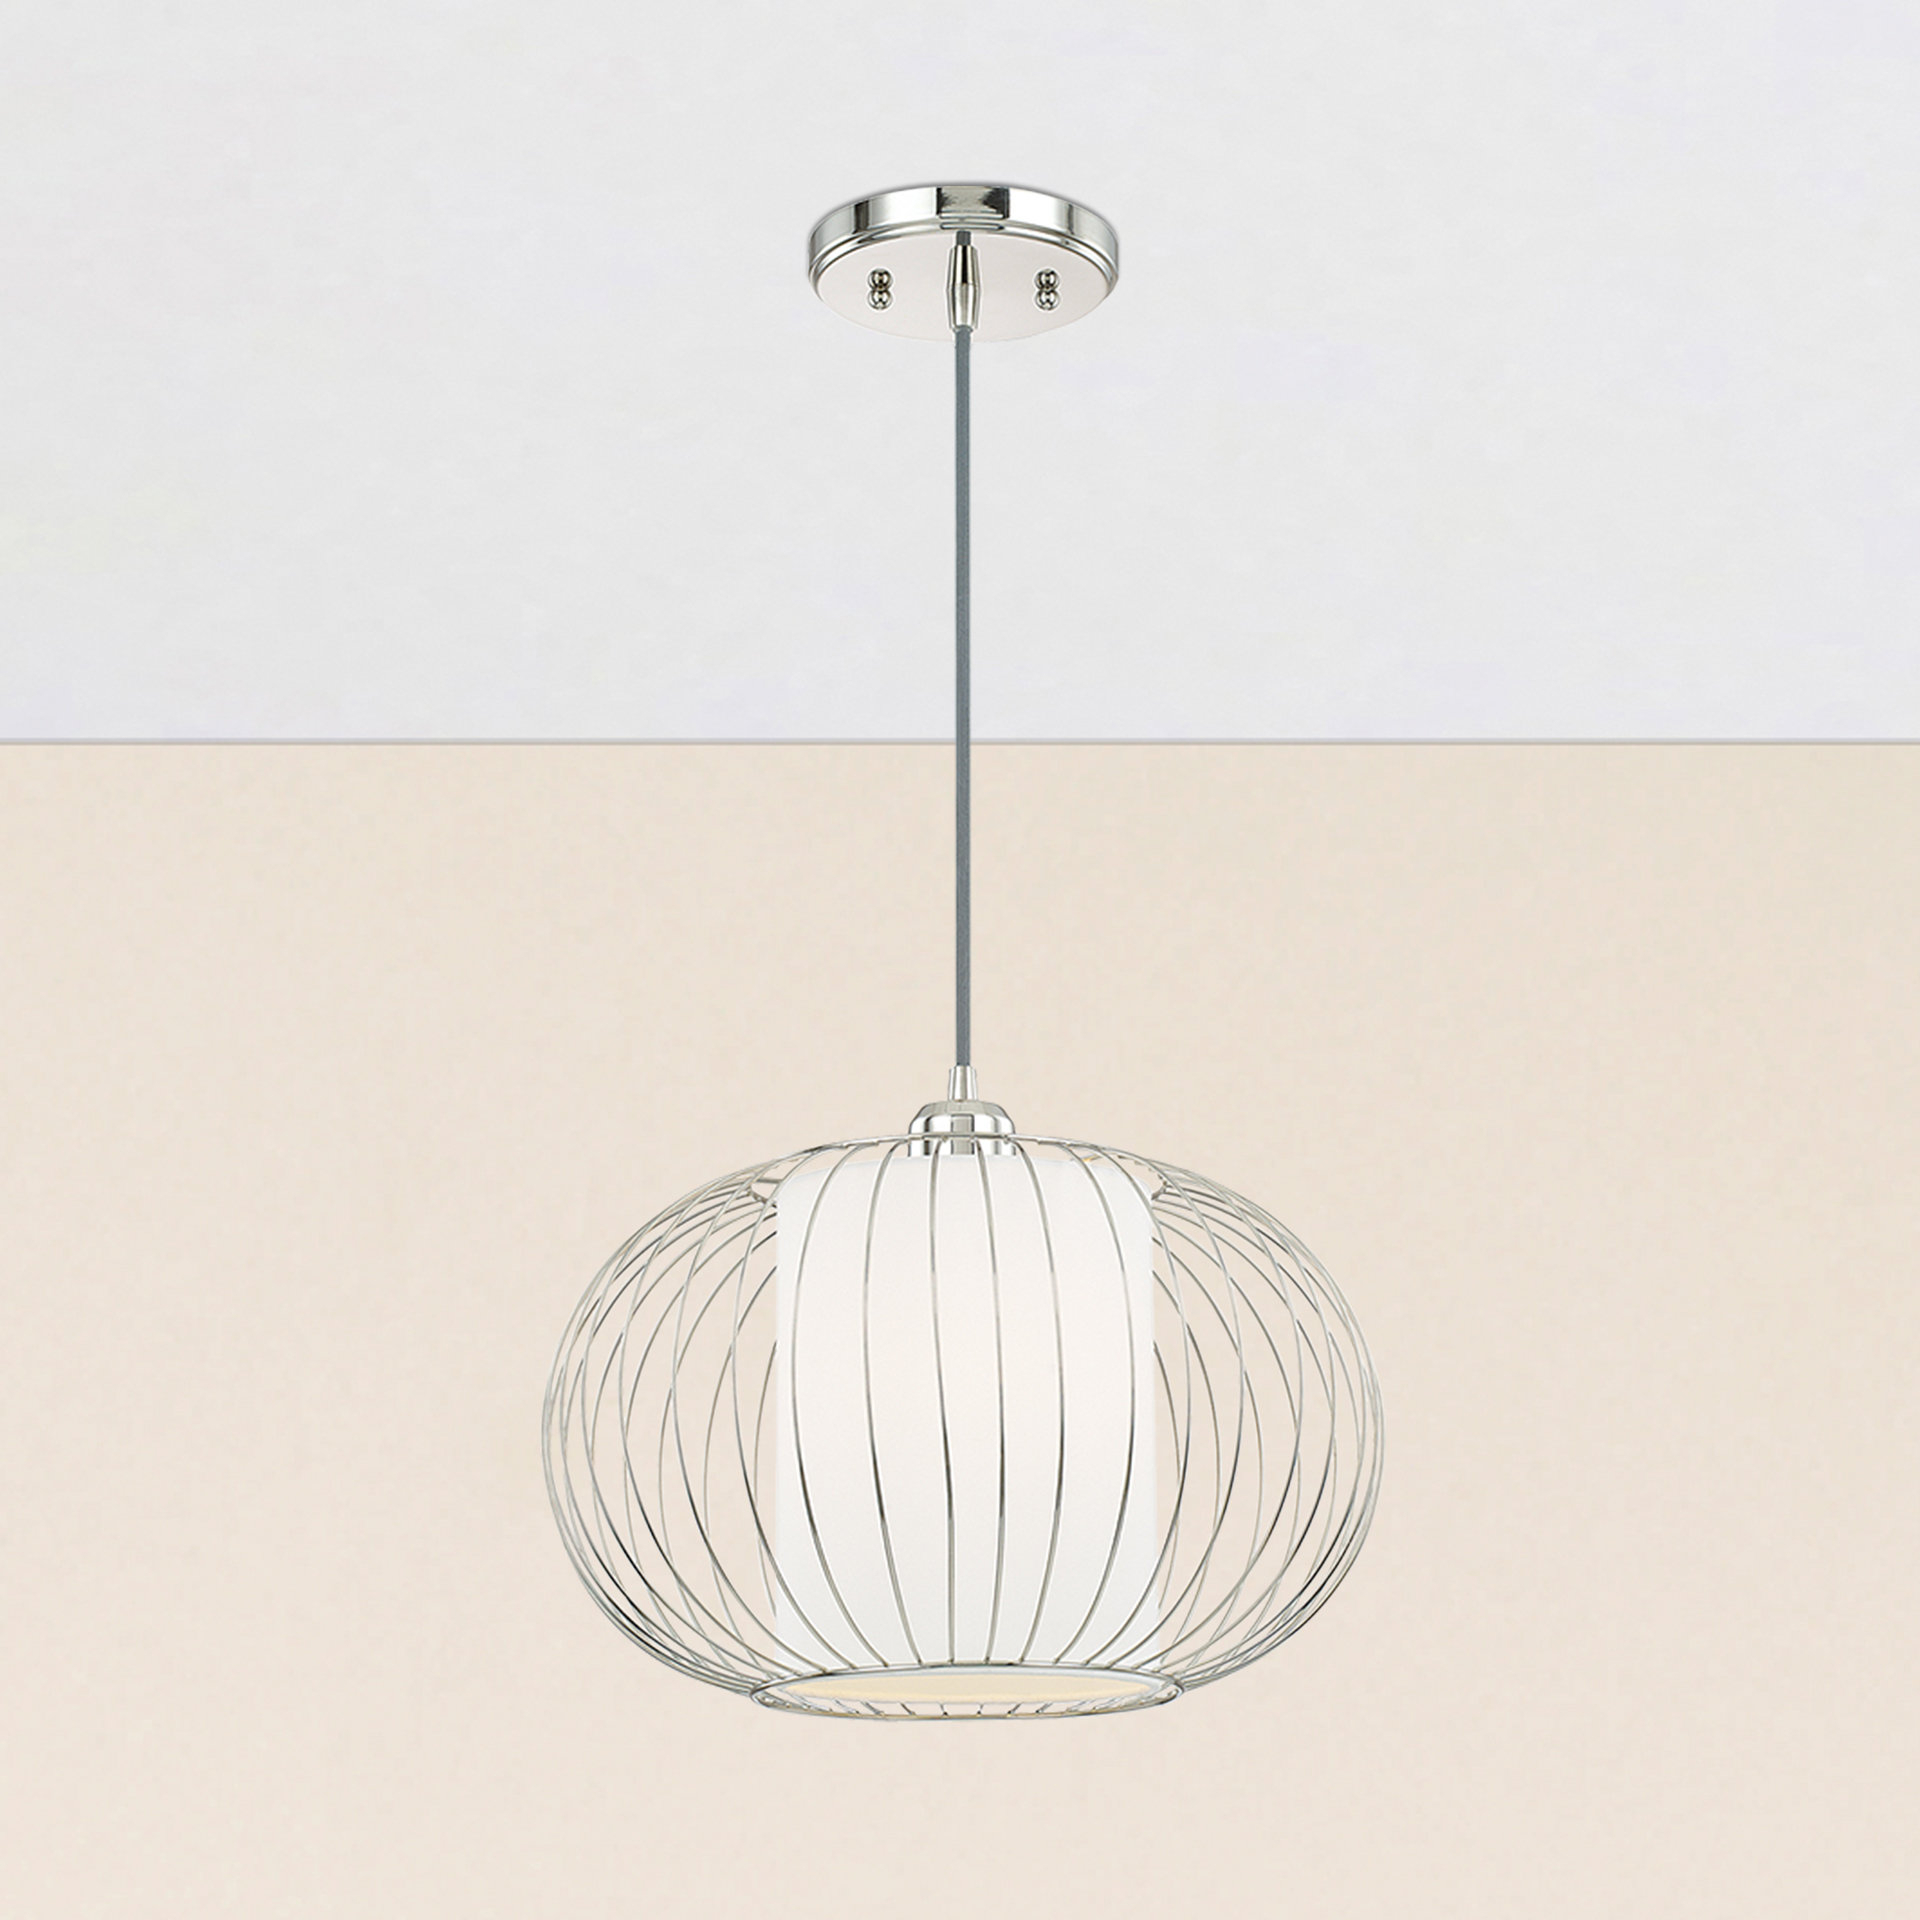 Abadie 1 Light Globe Pendant Pertaining To Most Up To Date Demi 1 Light Globe Pendants (Gallery 5 of 20)